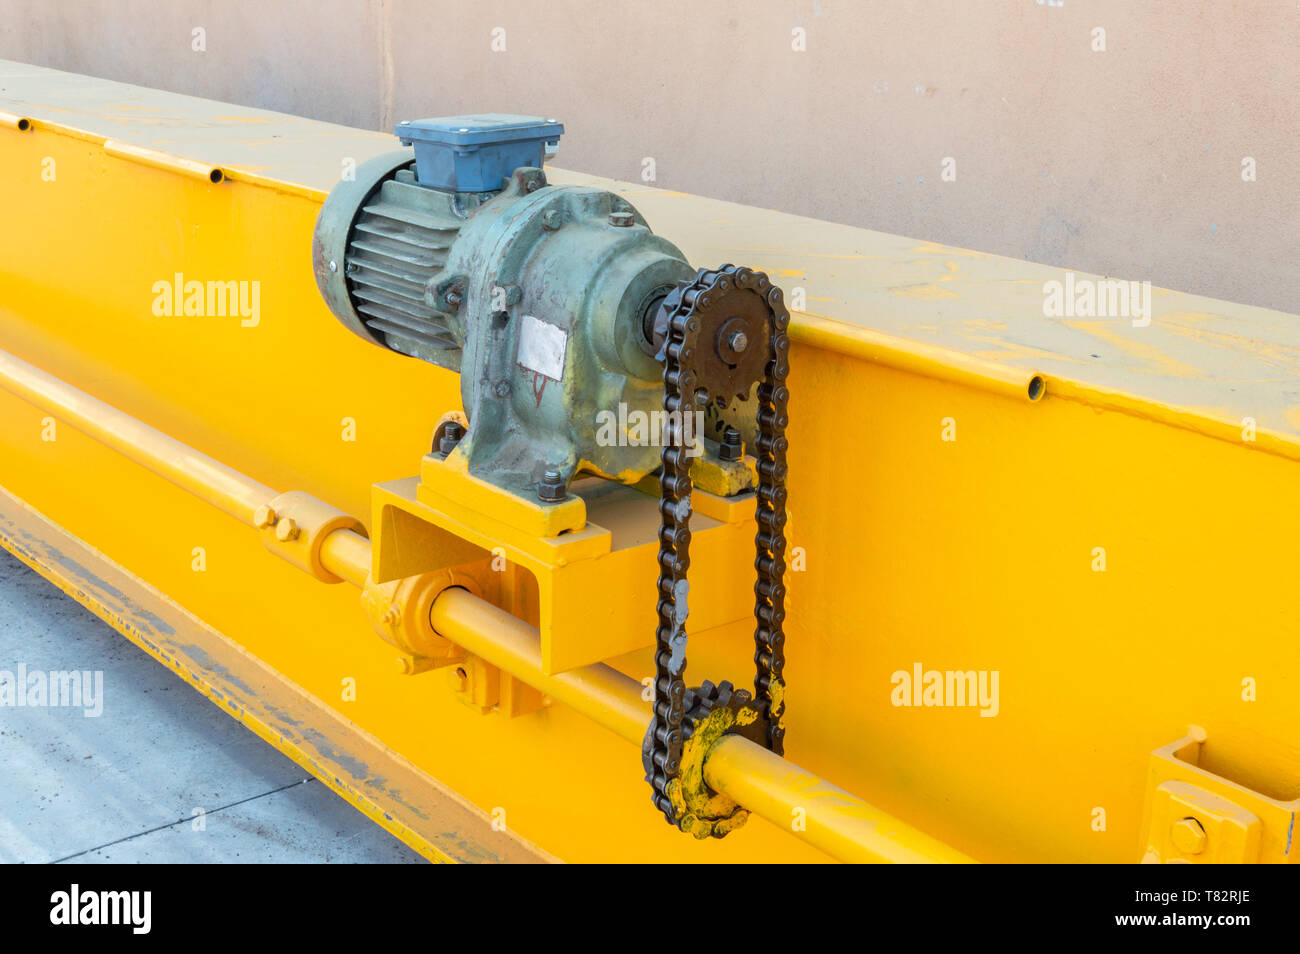 Parts of a crane ready for installation in the industrial plant. Overhead crane commonly called a bridge or gantry crane is a type of crane found in i Stock Photo